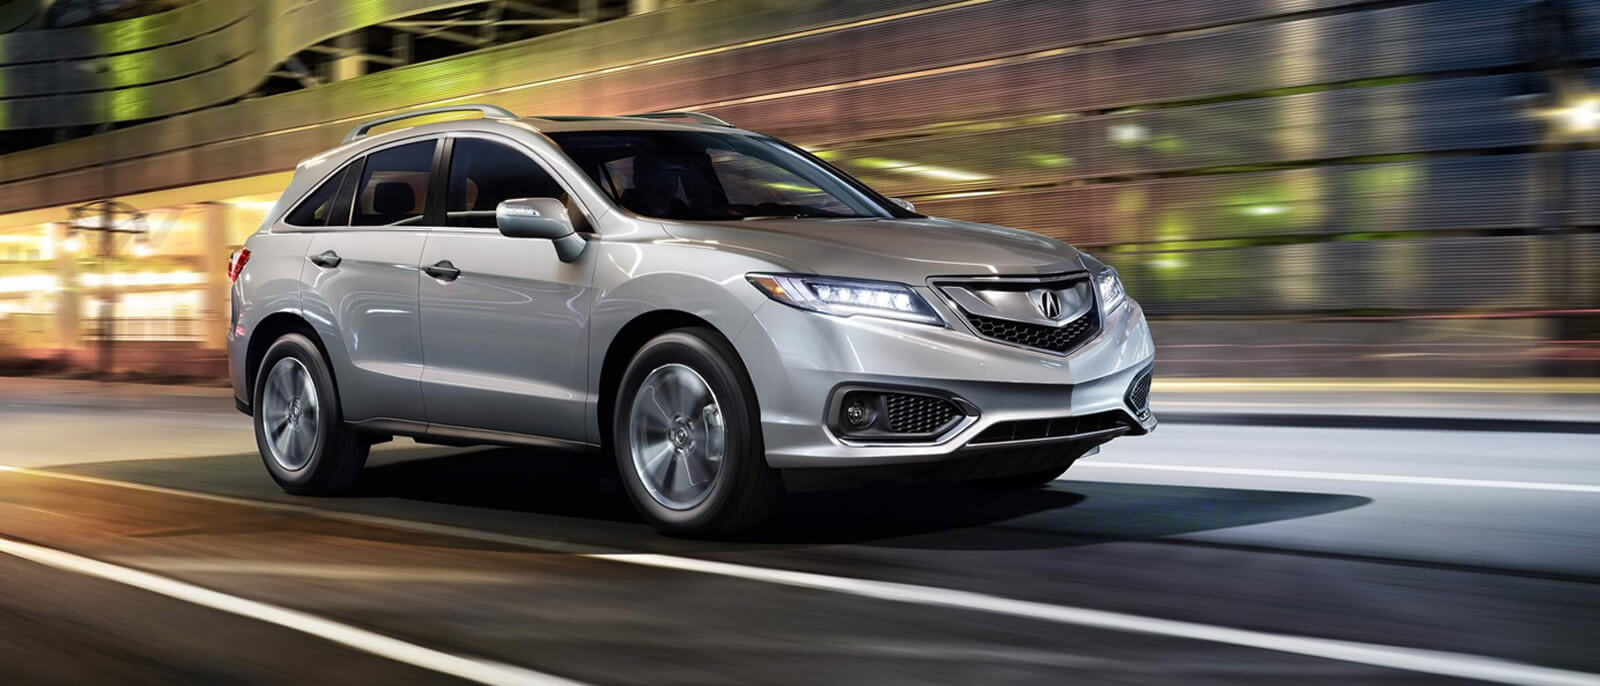 photo acura cdx specifically new article hans was credit small a china designed the chance greimel for ar in suv